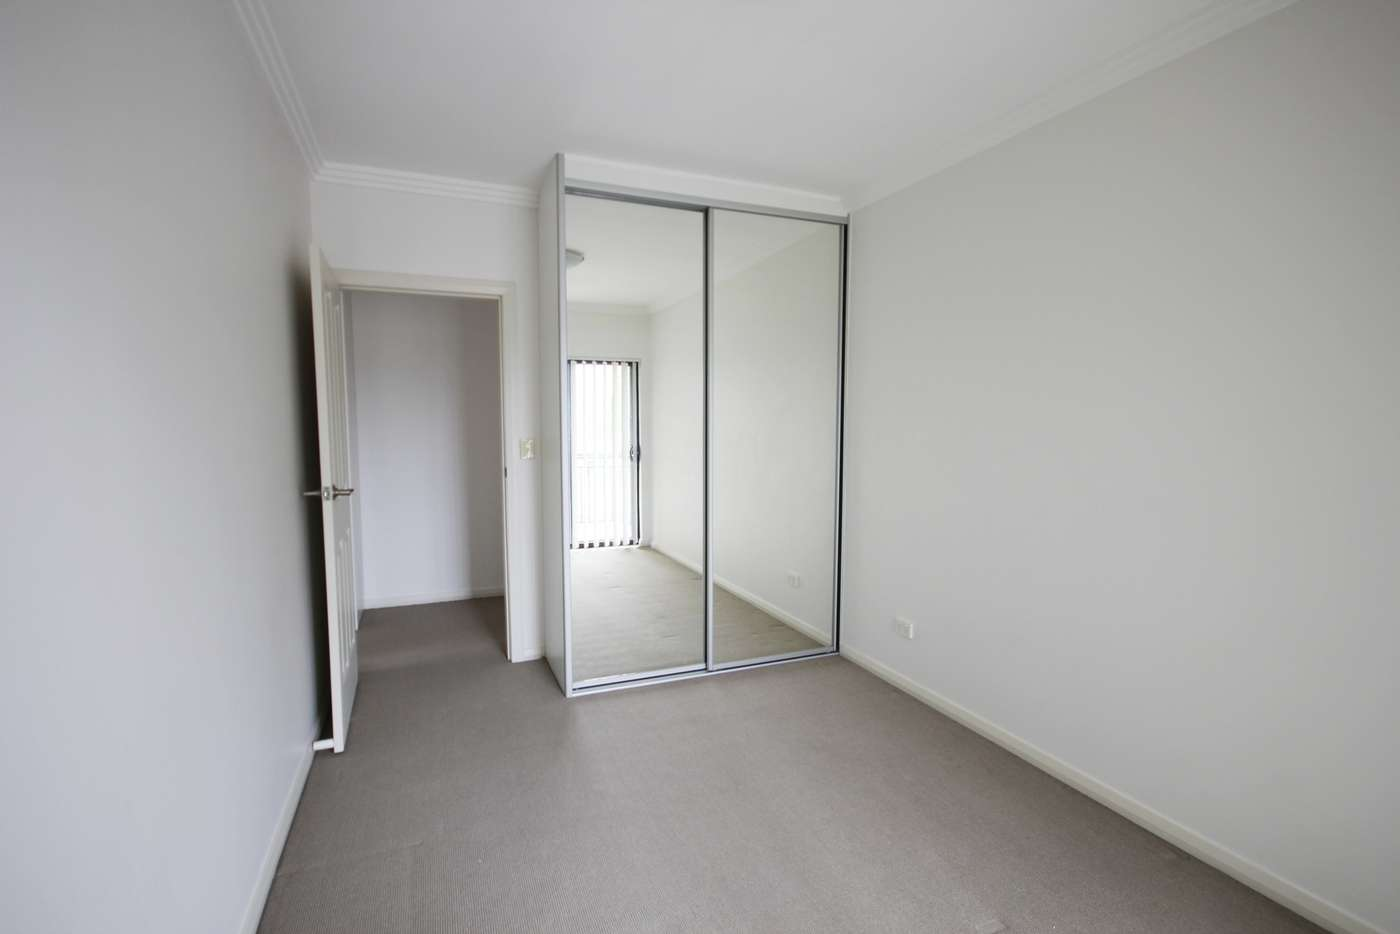 Sixth view of Homely house listing, 7 Leicester Street, Bexley NSW 2207